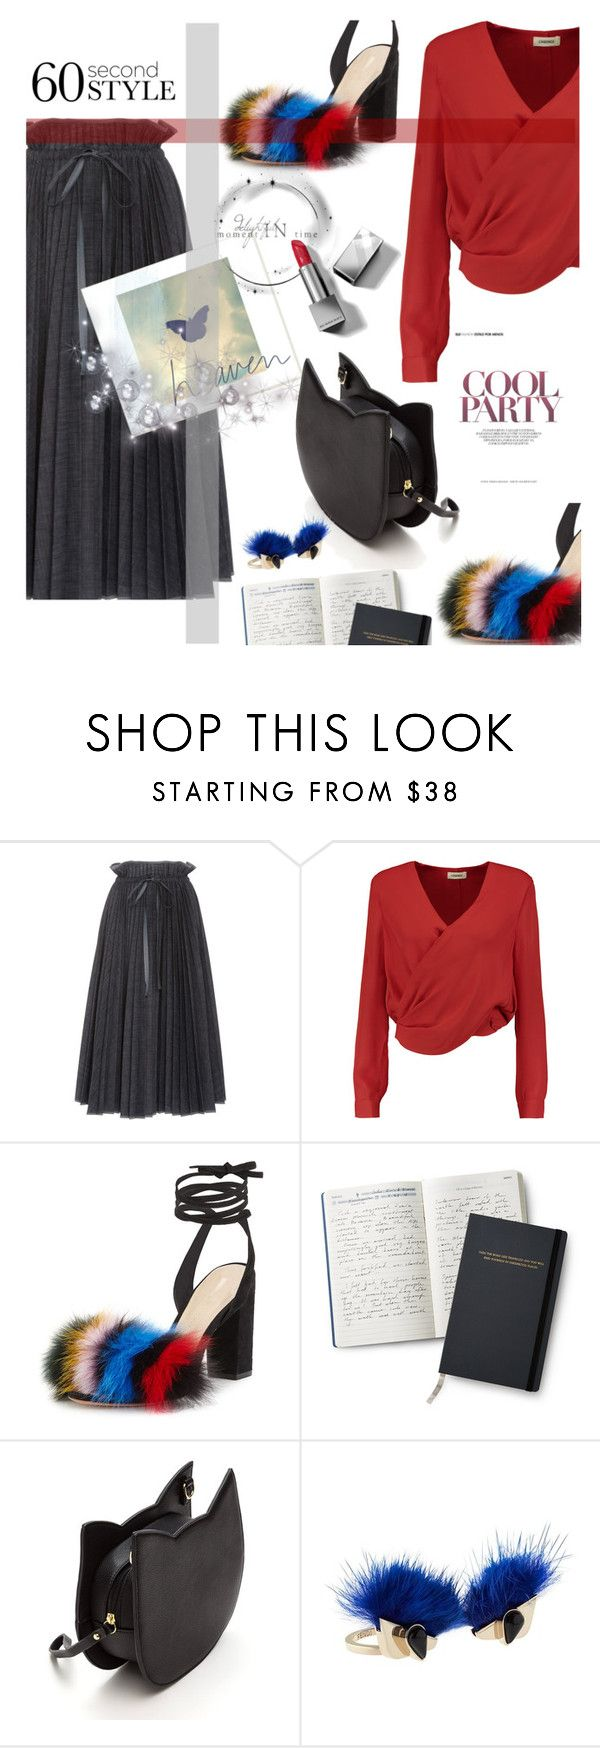 """60 Second Style: Family Dinner"" by klementina-kuzma ❤ liked on Polyvore featuring Dice Kayek, L'Agence, Loeffler Randall, Fendi and Burberry"